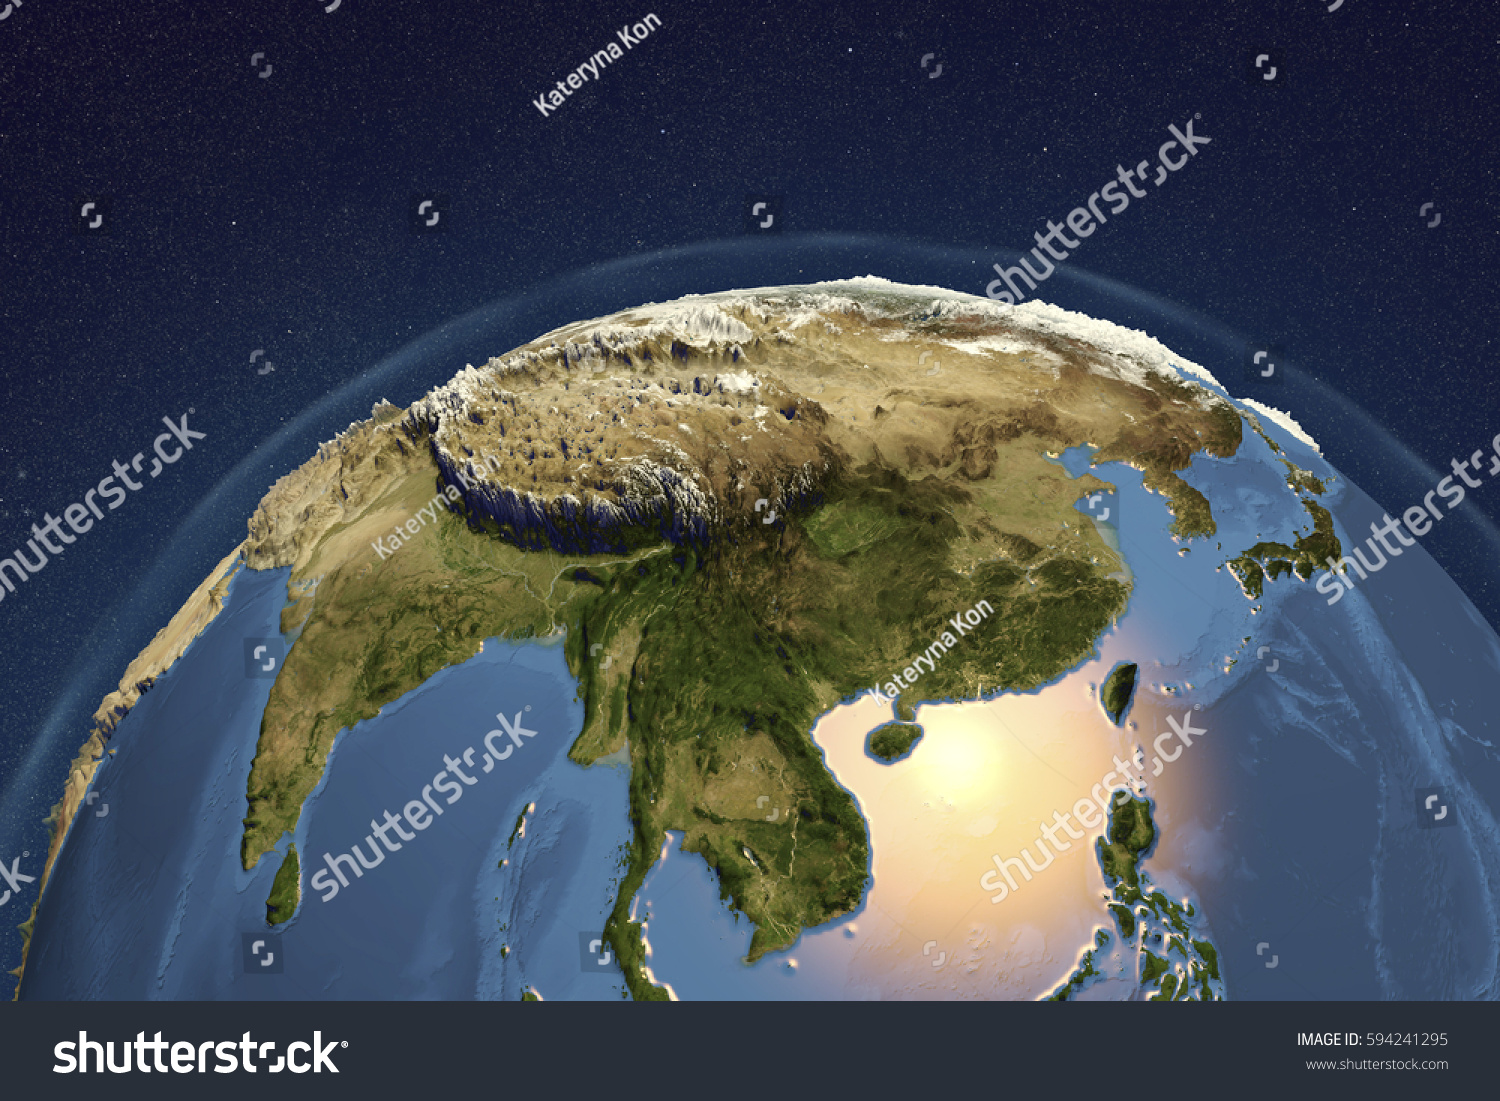 Planet Earth Space Showing Asia Enhanced Stock Illustration